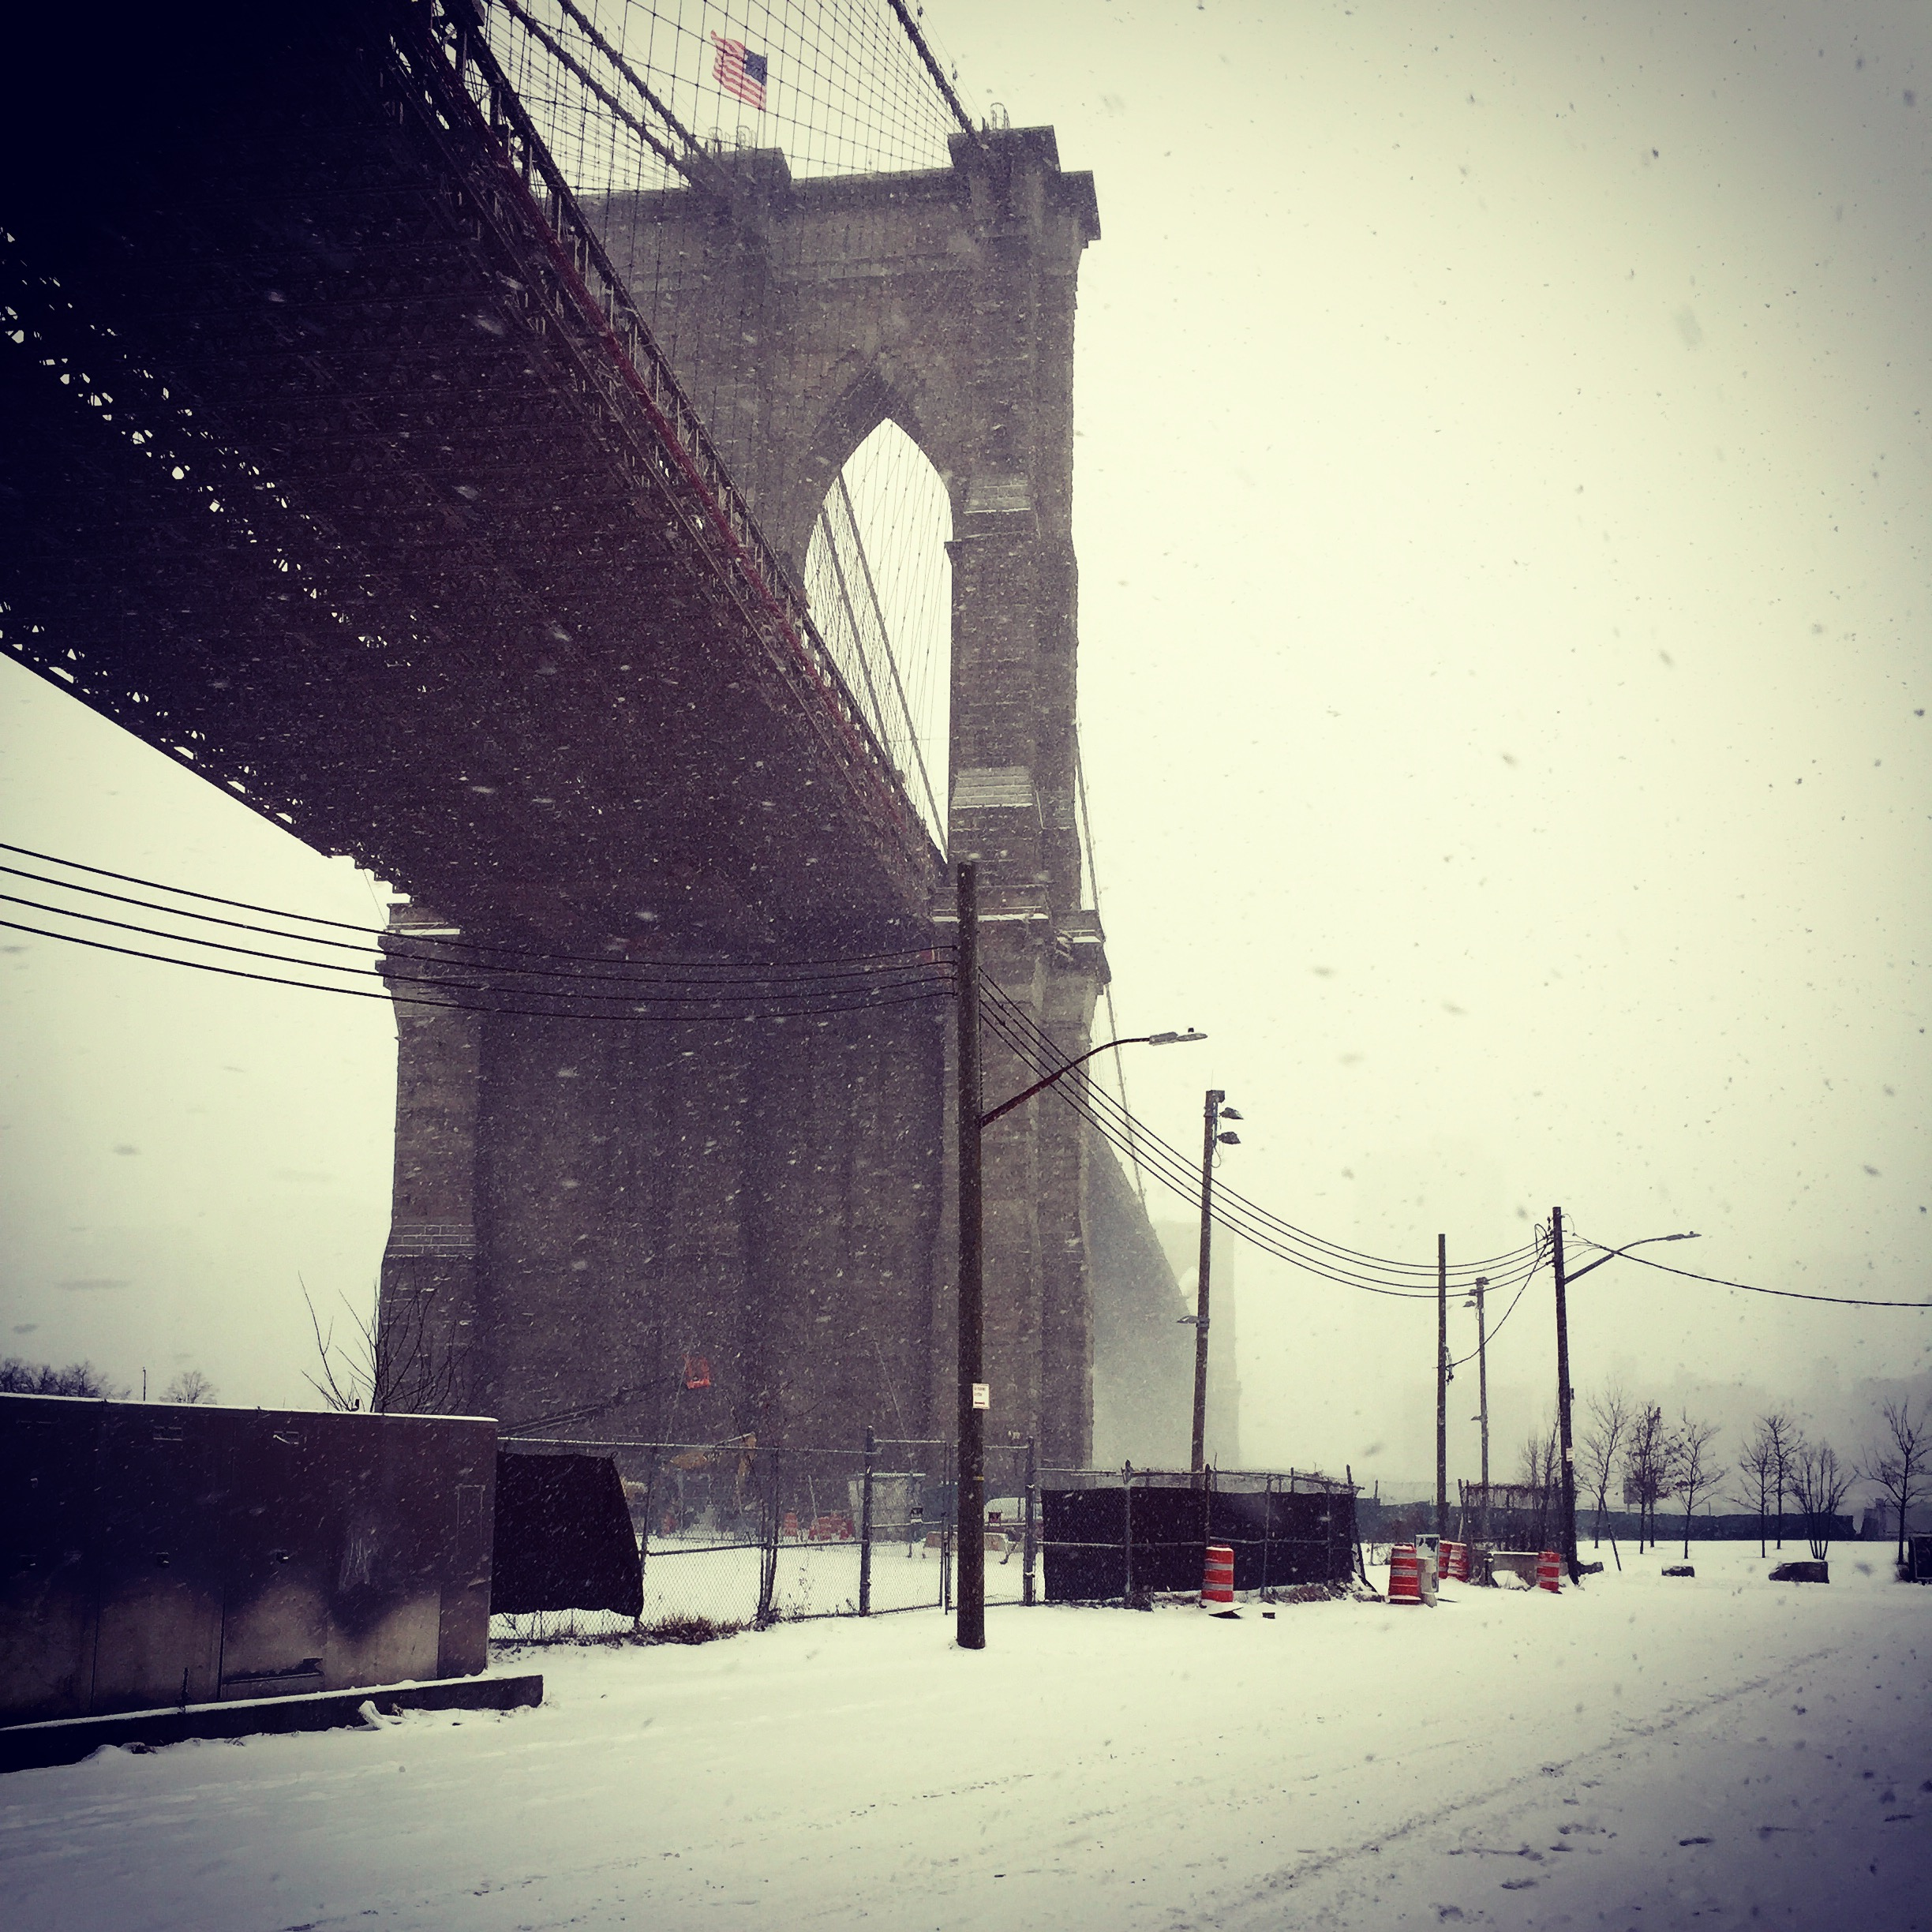 Brooklyn bridge, Snowy, outside St Ann's Warehouse, Jan 2017